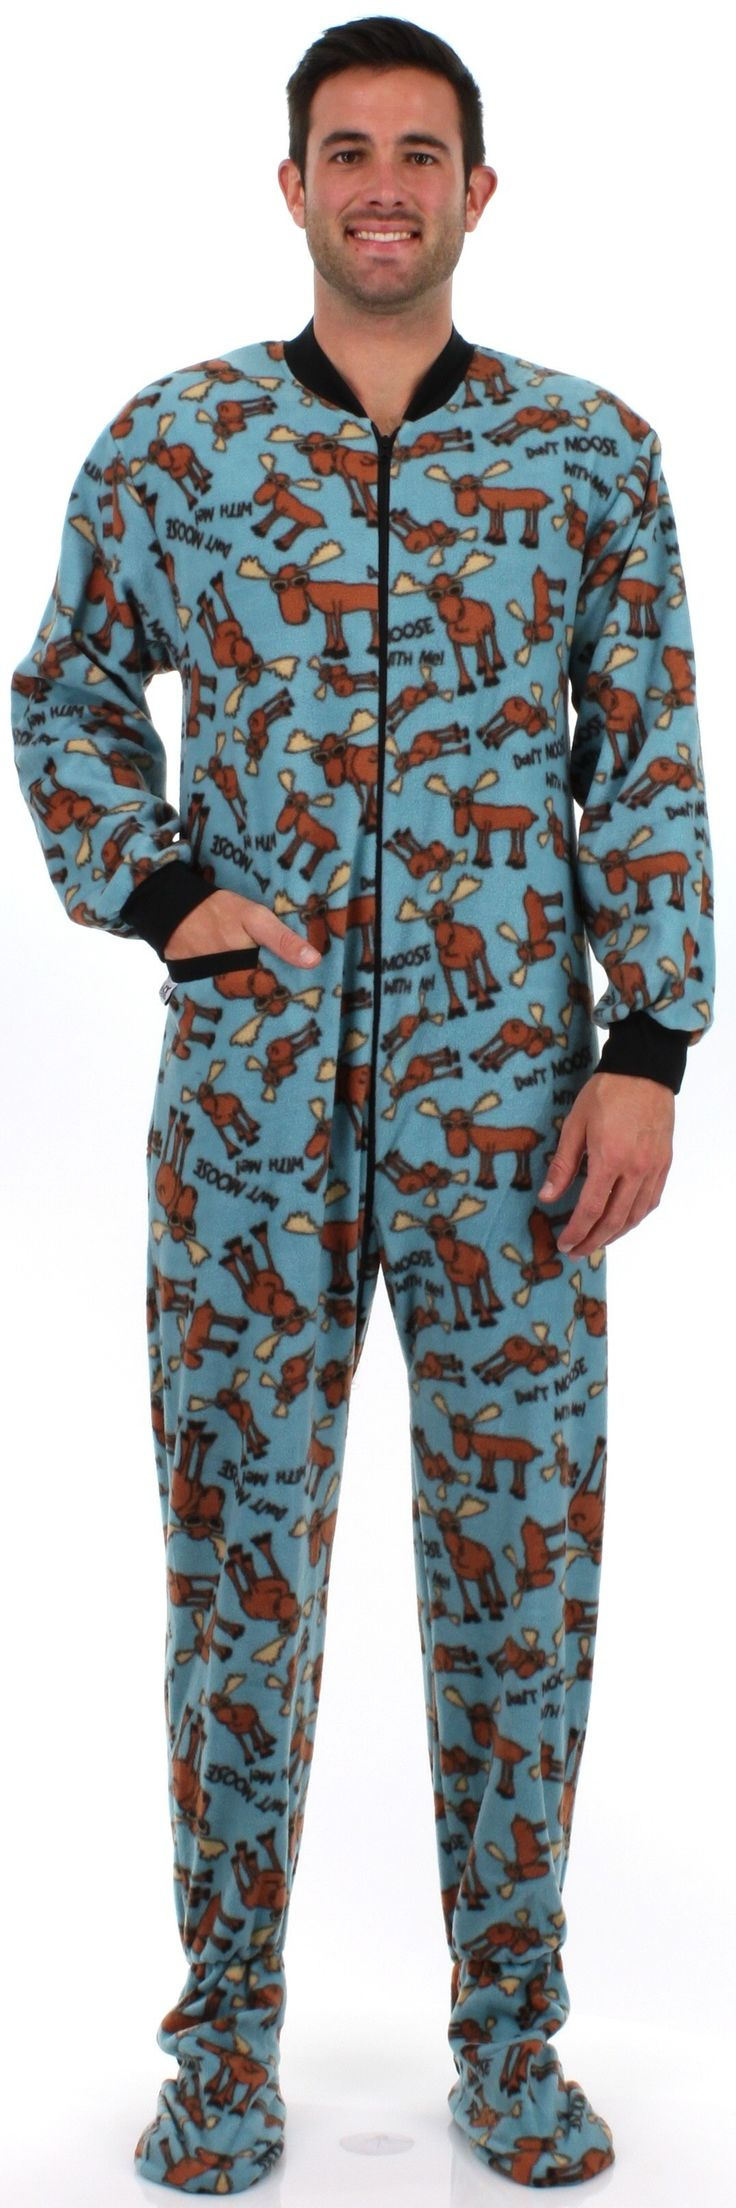 Don't Moose Men's Footed Pajama by Lazy One